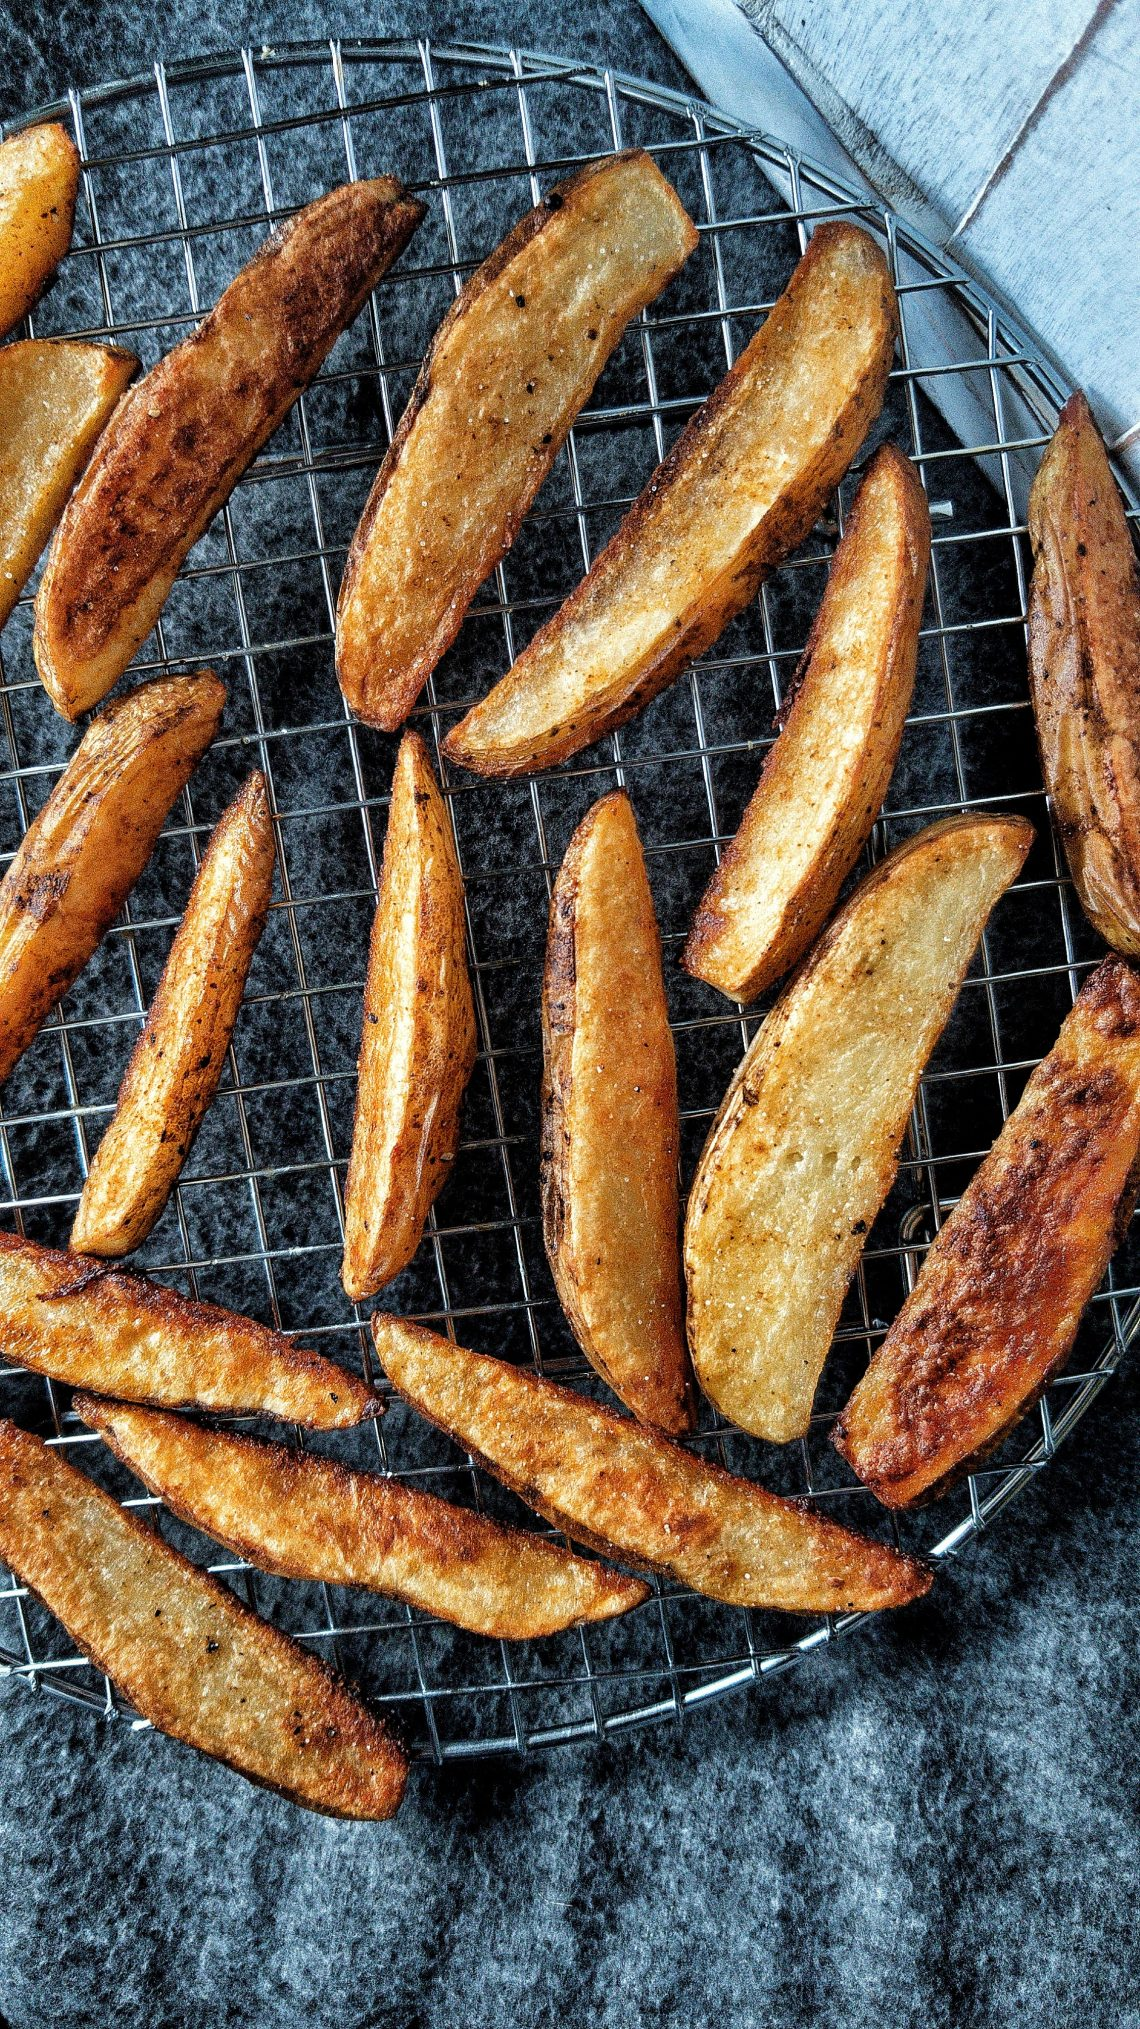 crispy baked potato wedges fries